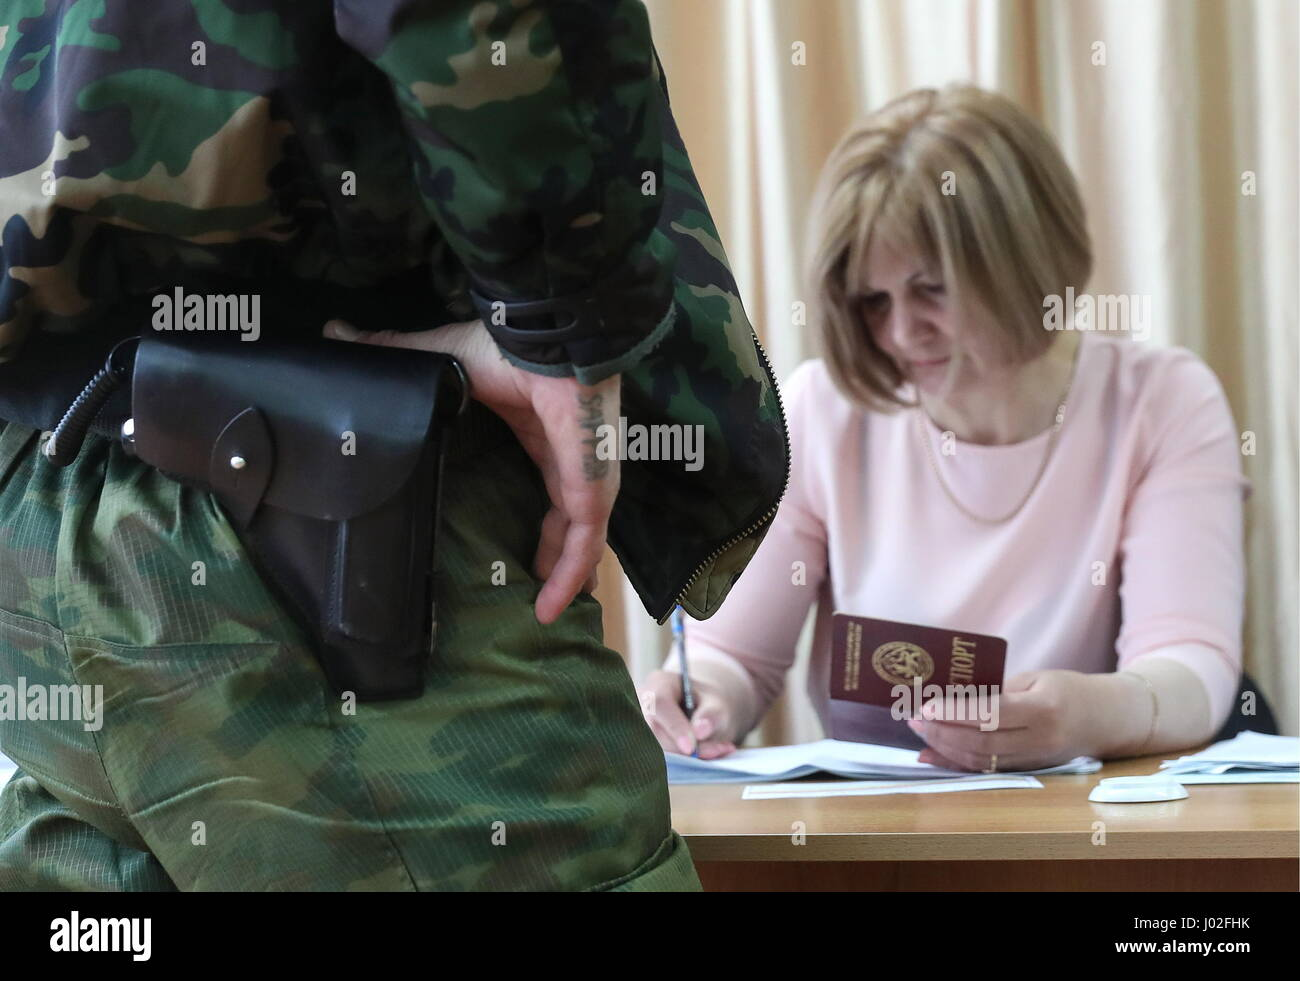 Tskhinval, South Ossetia. 9th Apr, 2017. An Election Commission member seen during the 2017 South Ossetian presidential - Stock Image